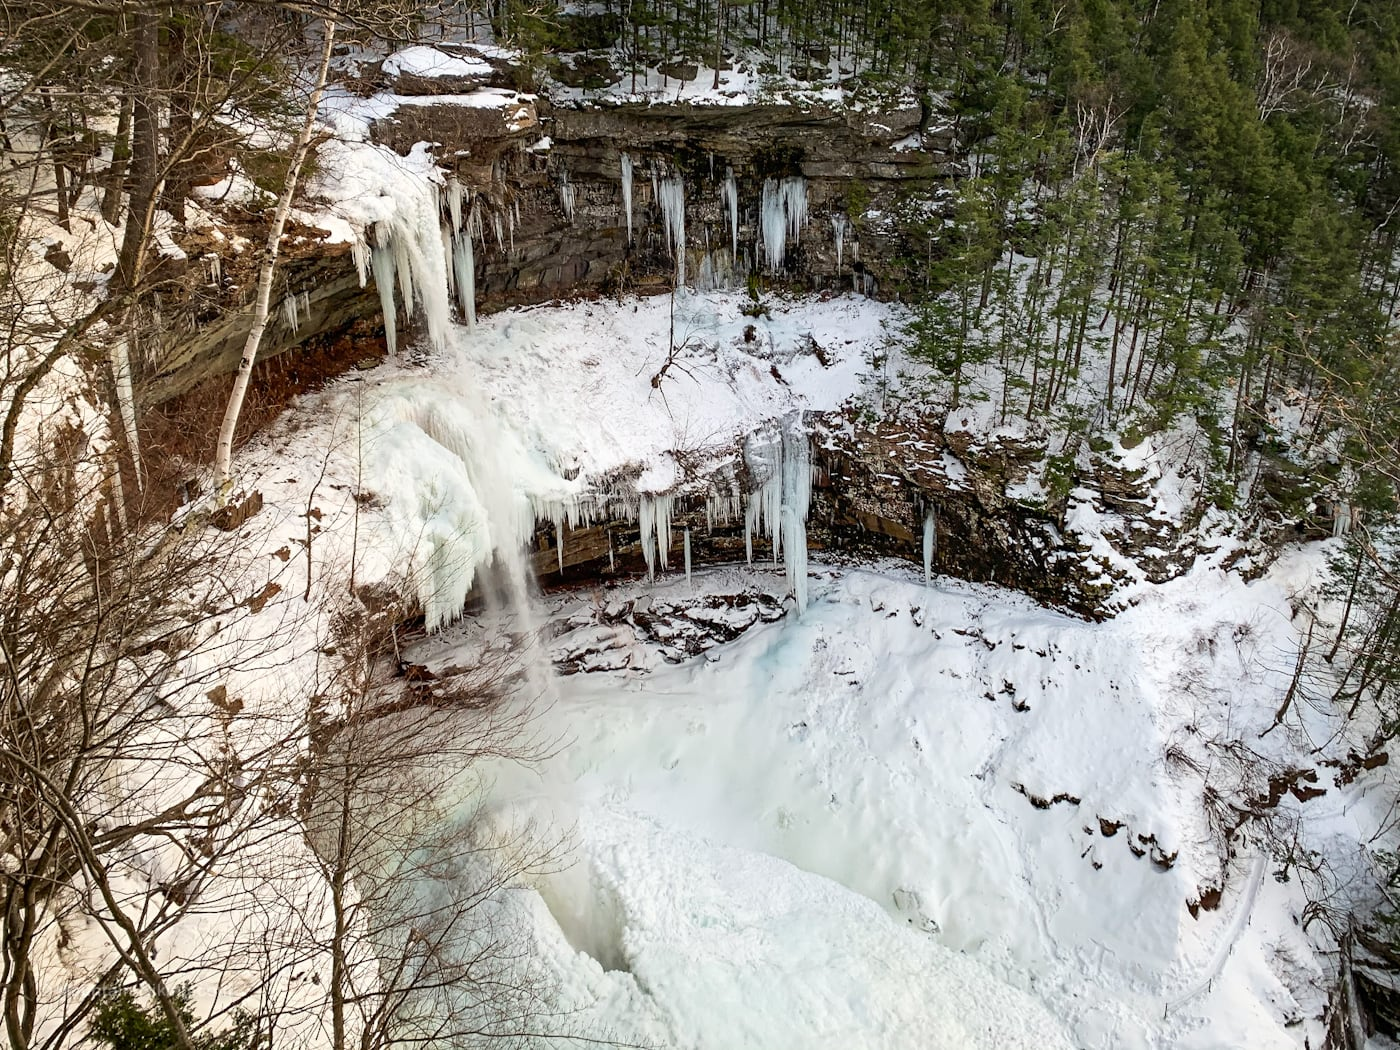 Iced-up Kaaterskill Fals